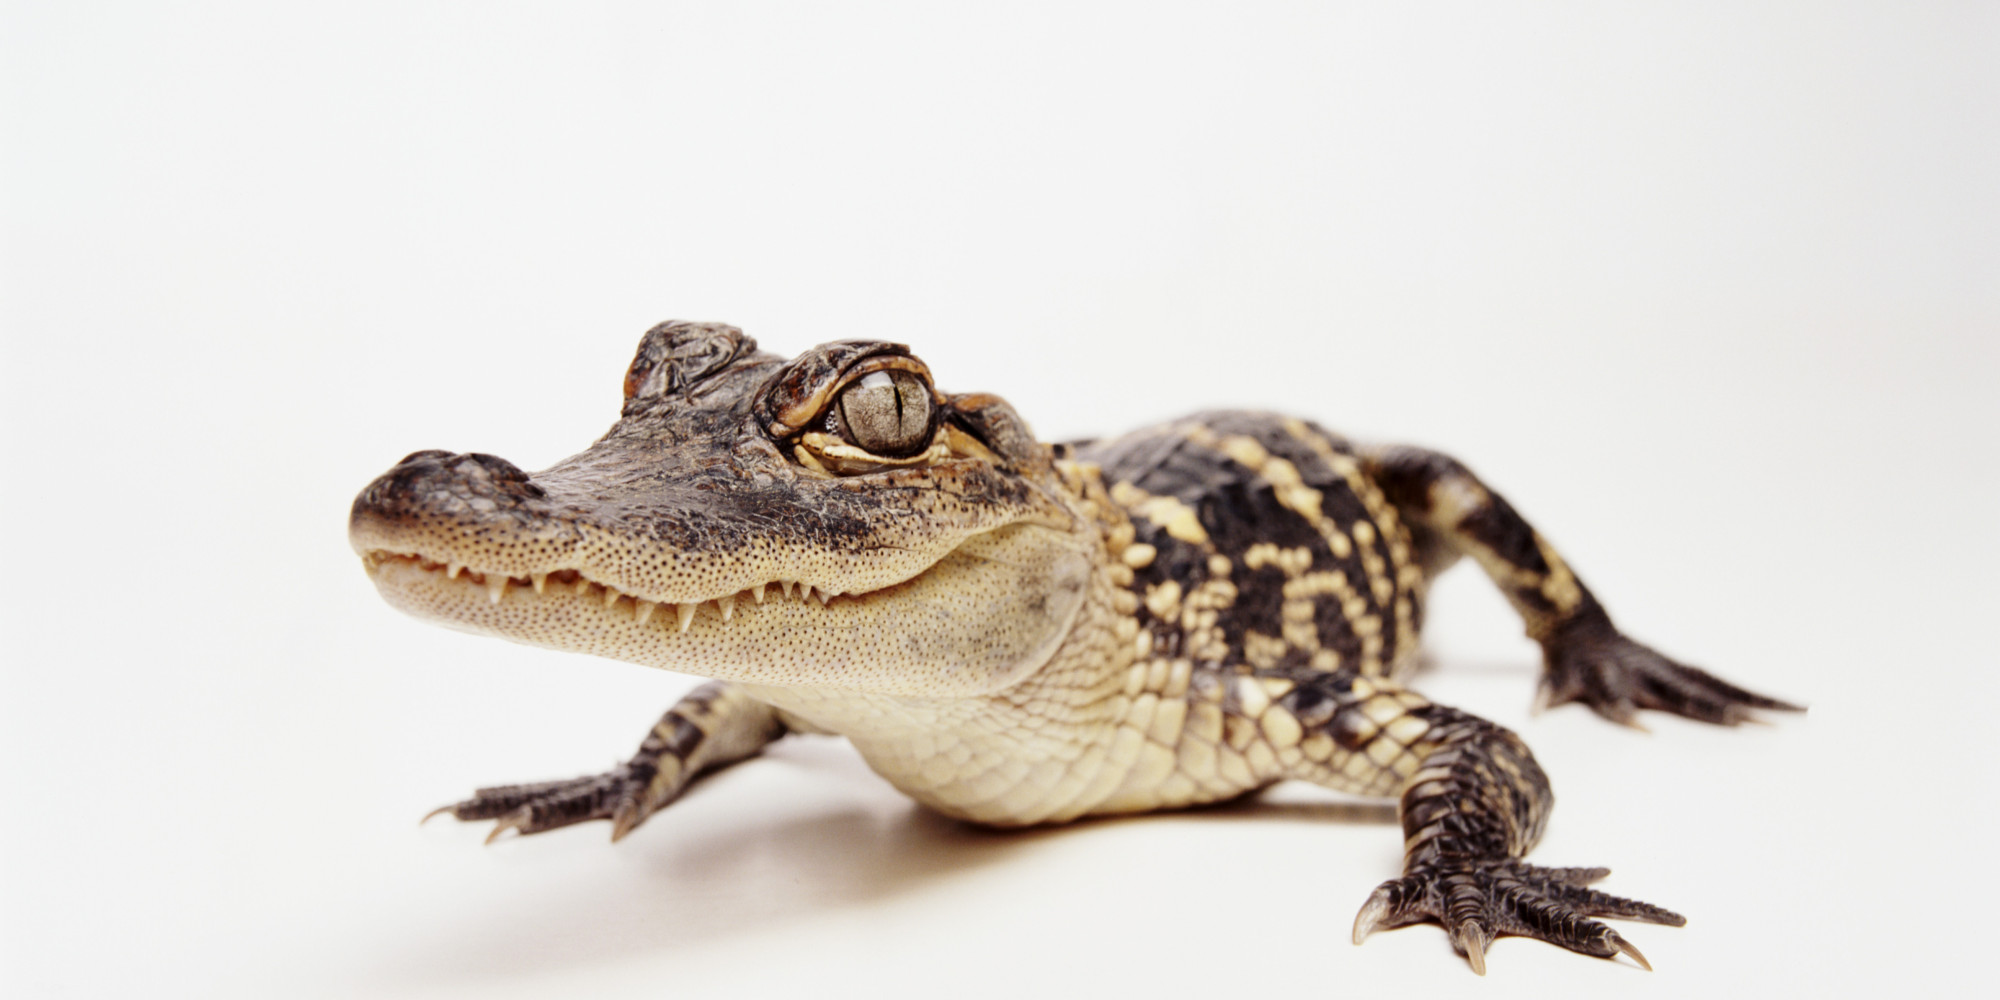 Florida Man Tries To Trade Alligator For Beer Gets Cited